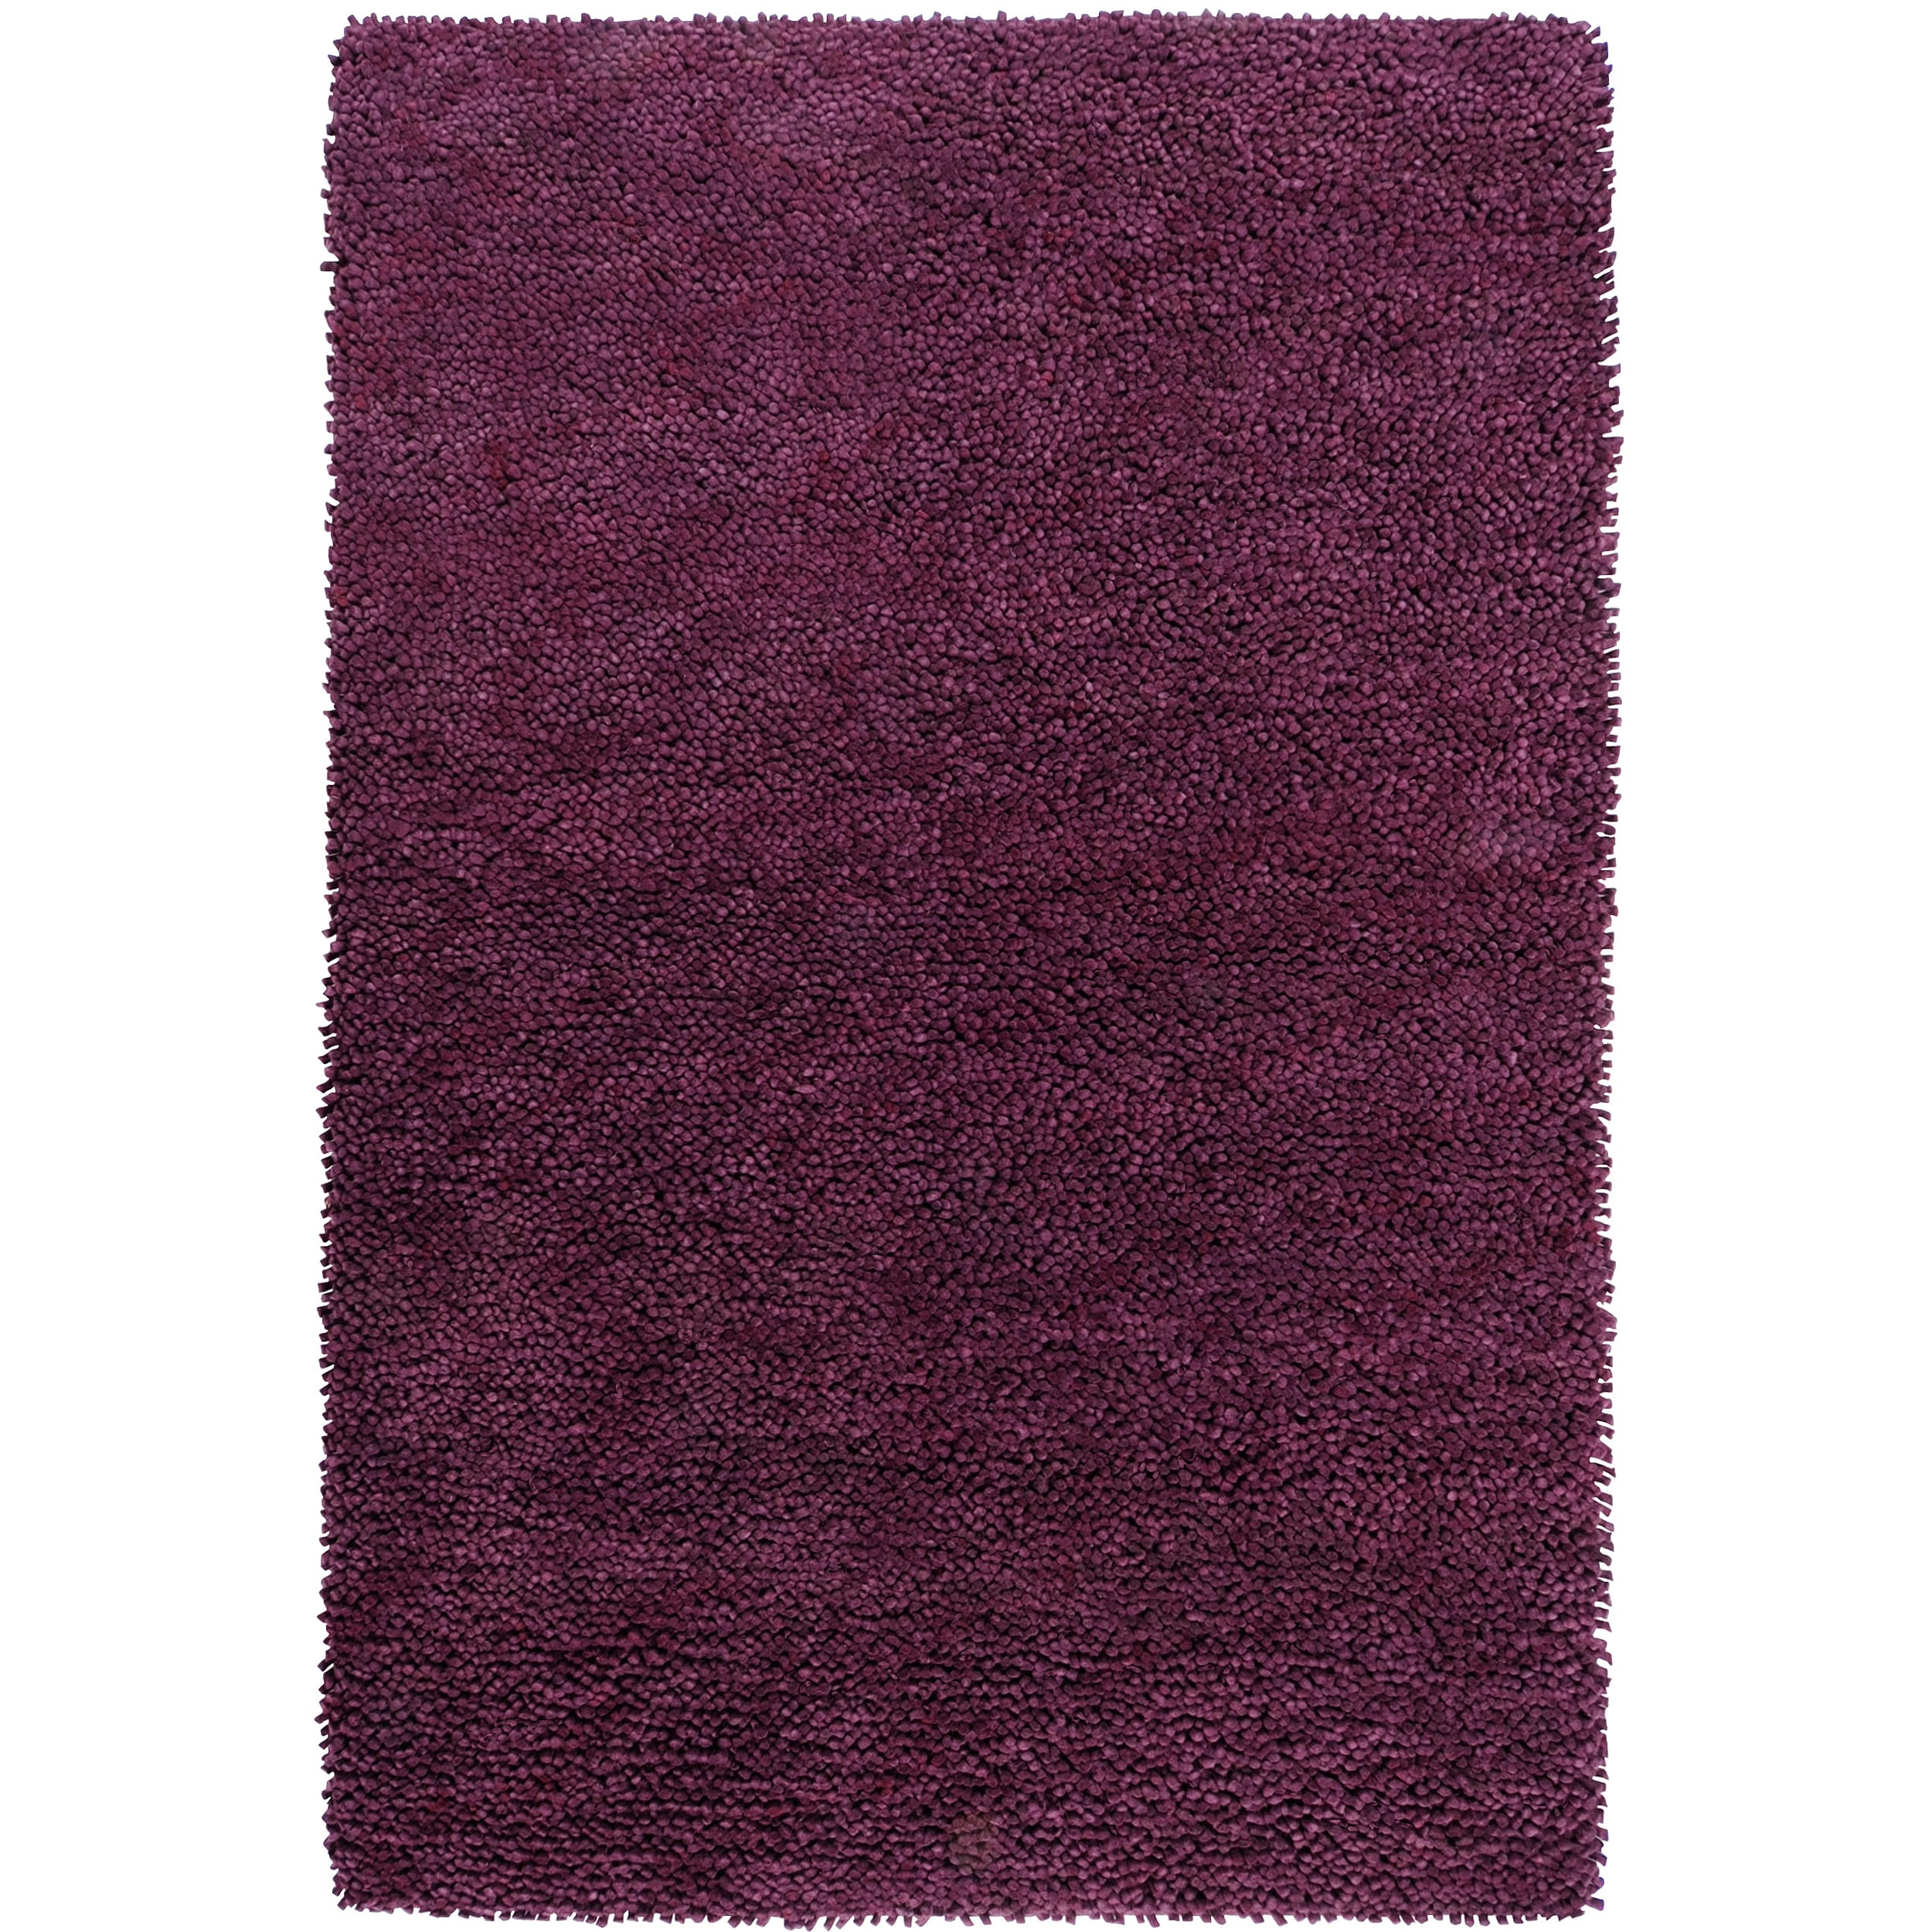 Hand-woven Lucca Colorful Plush Shag New Zealand Felted Wool Rug ( 9' x 13' )